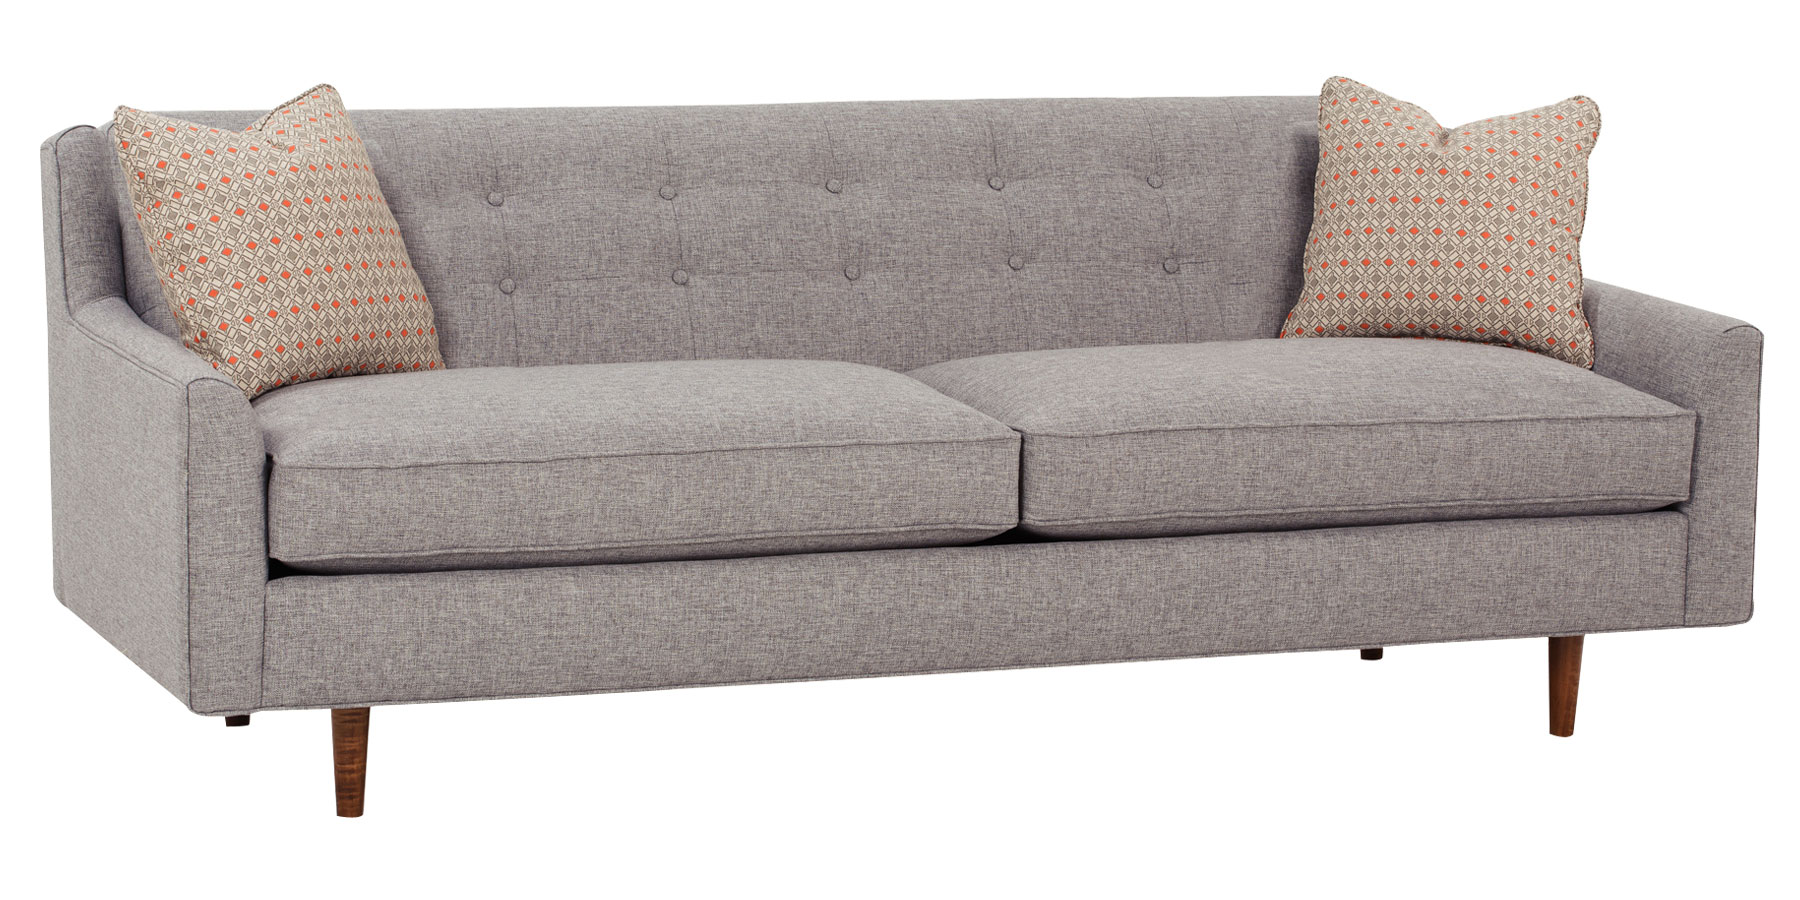 Mid century fabric sofa group with inset legs club furniture for Mid century modern sofas